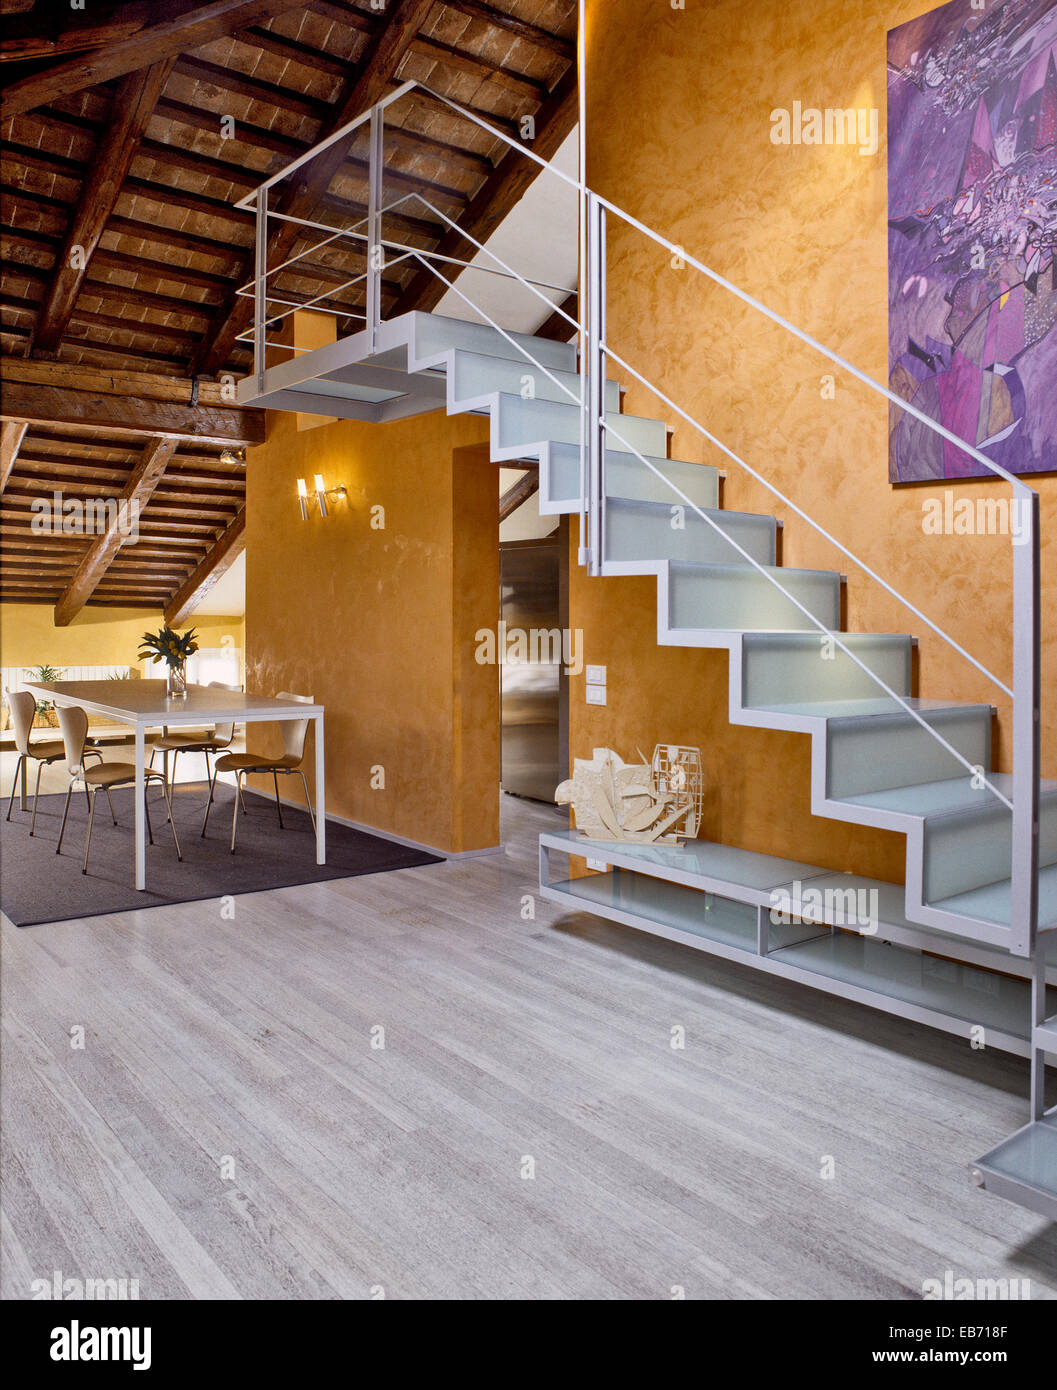 Interior View Of Entrance With Staircase Wood Floor And Dining